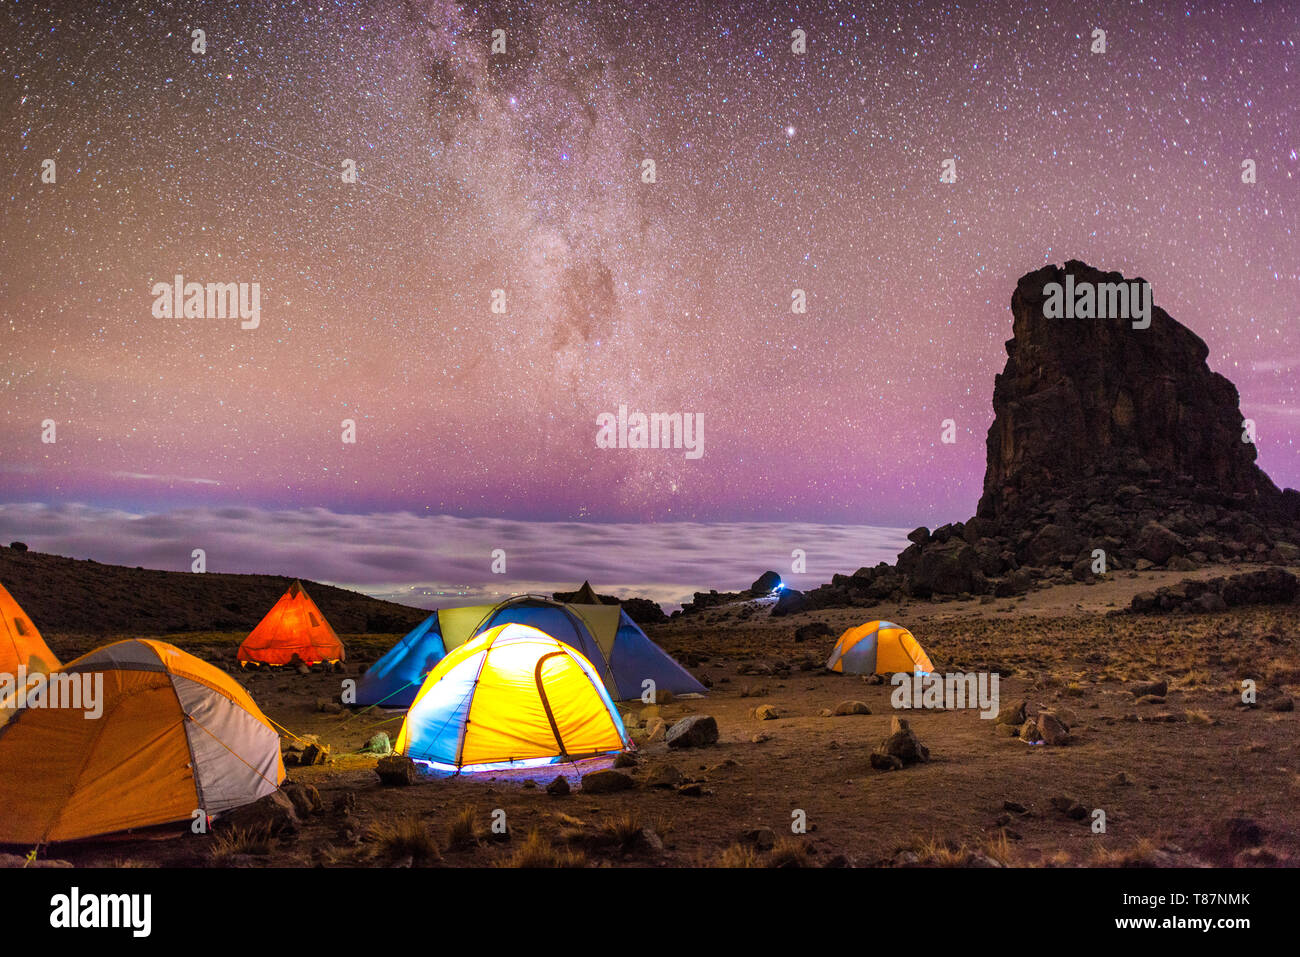 The brilliantly clear night sky at Lava Tower Camp (15,215 feet), with Lava Tower at right, clouds in the distance, and the Milky Way. Mt Kilimanjaro' - Stock Image